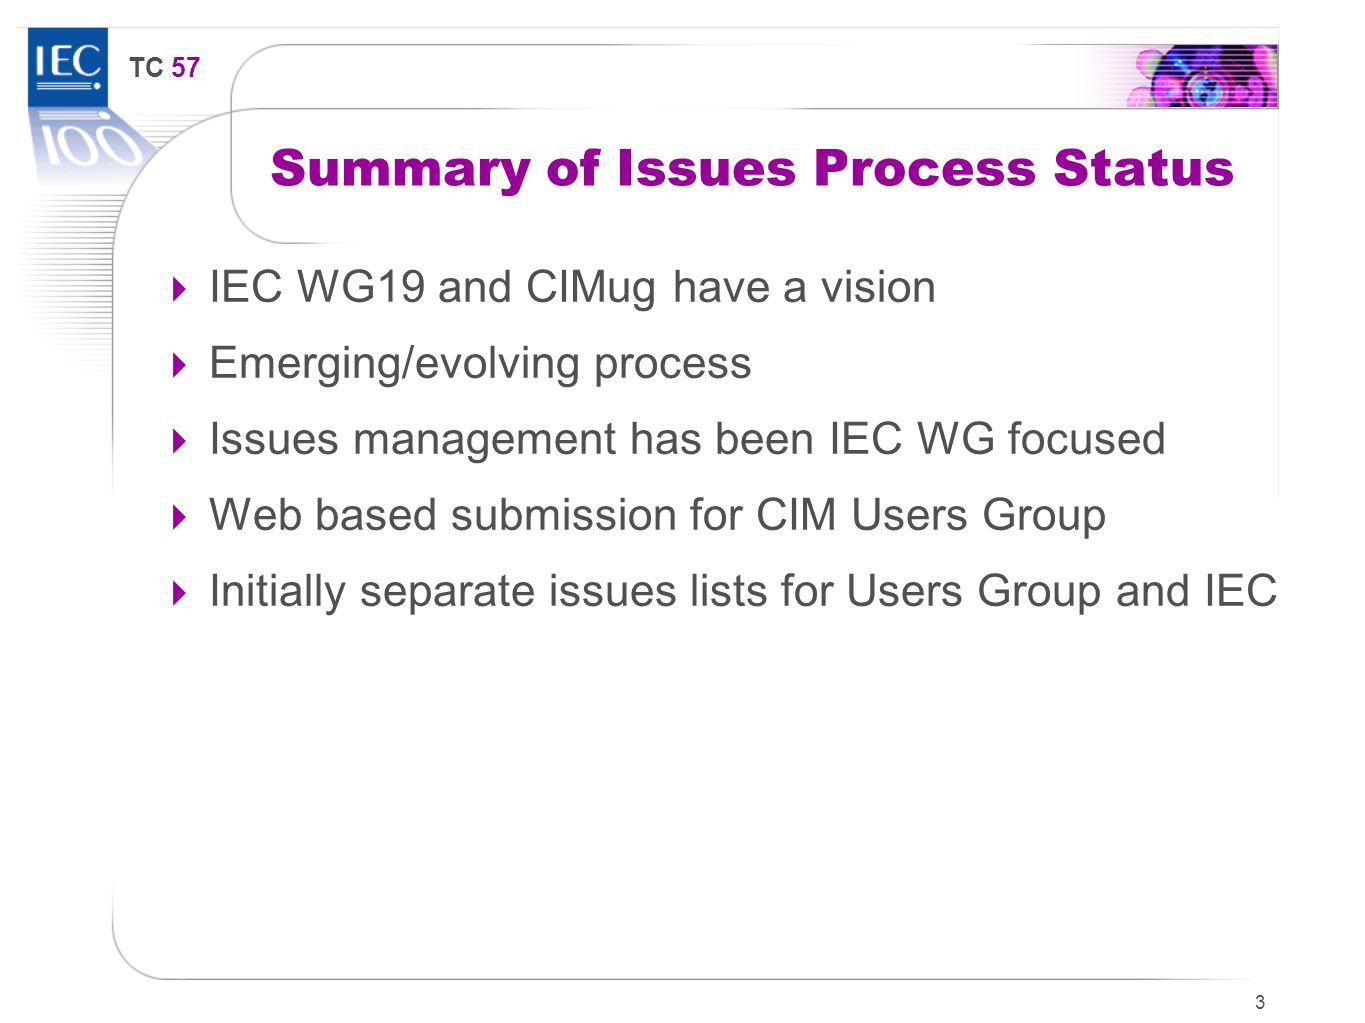 TC 57 Summary of Issues Process Status  IEC WG19 and CIMug have a vision  Emerging/evolving process  Issues management has been IEC WG focused  Web based submission for CIM Users Group  Initially separate issues lists for Users Group and IEC 3